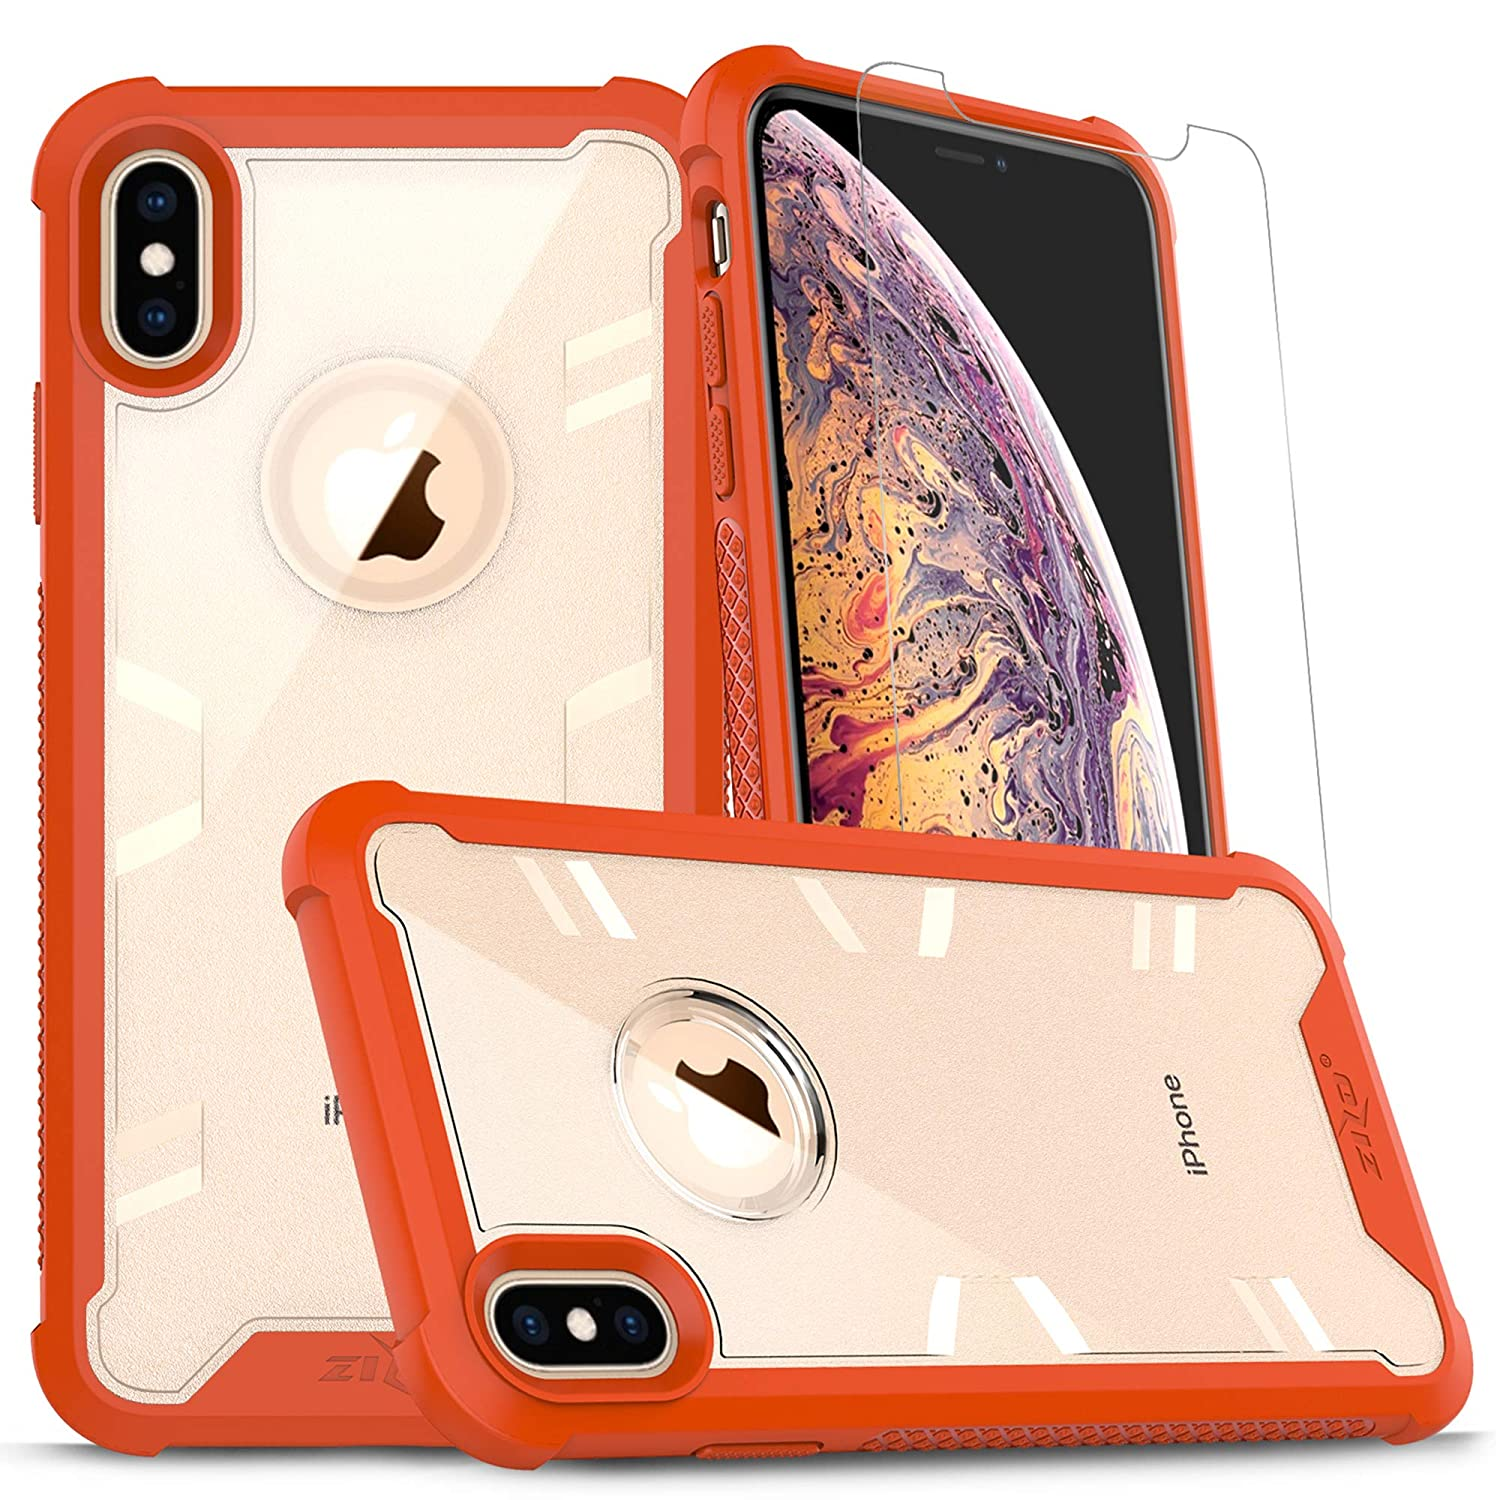 3e7bf8bc7868 Amazon.com: Zizo Proton Series Compatible with iPhone Xs Max Case Military  Grade Drop Tested with Tempered Glass Screen Protector Orange Clear: Cell  Phones ...